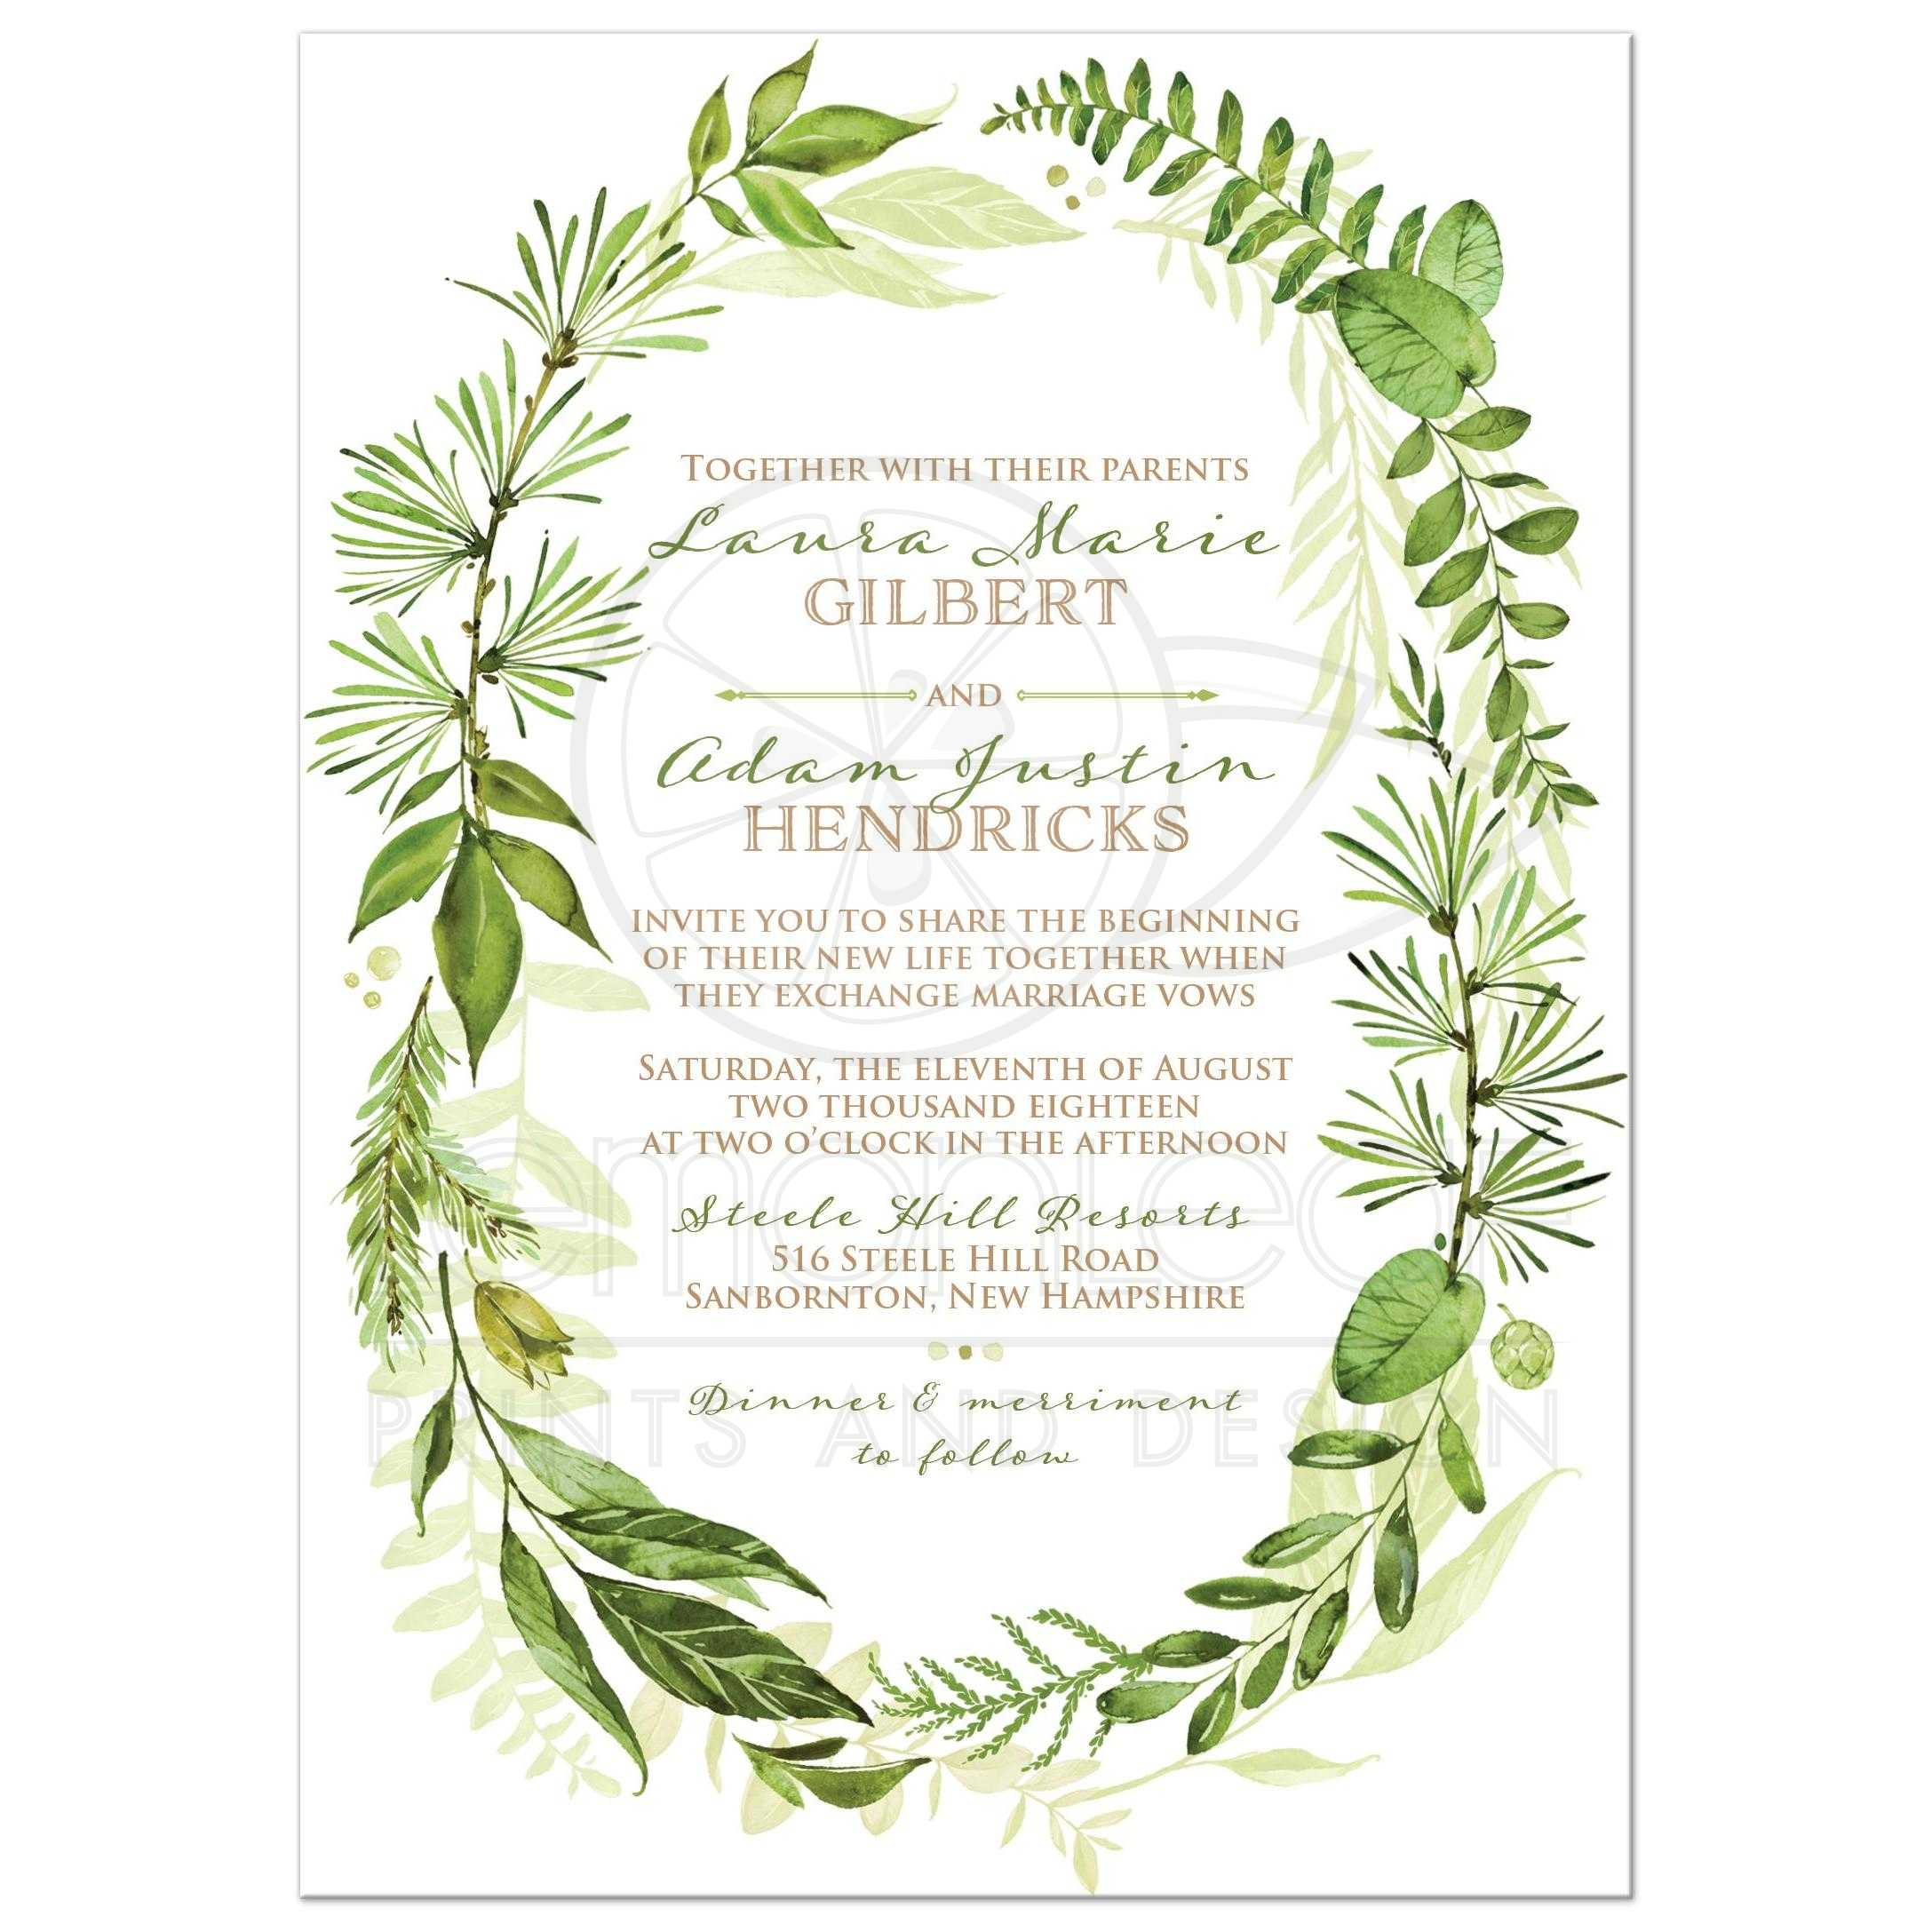 Greenery Wedding Invitation With Orted Green Watercolor Foliage Leaves Stems And Boughs In An